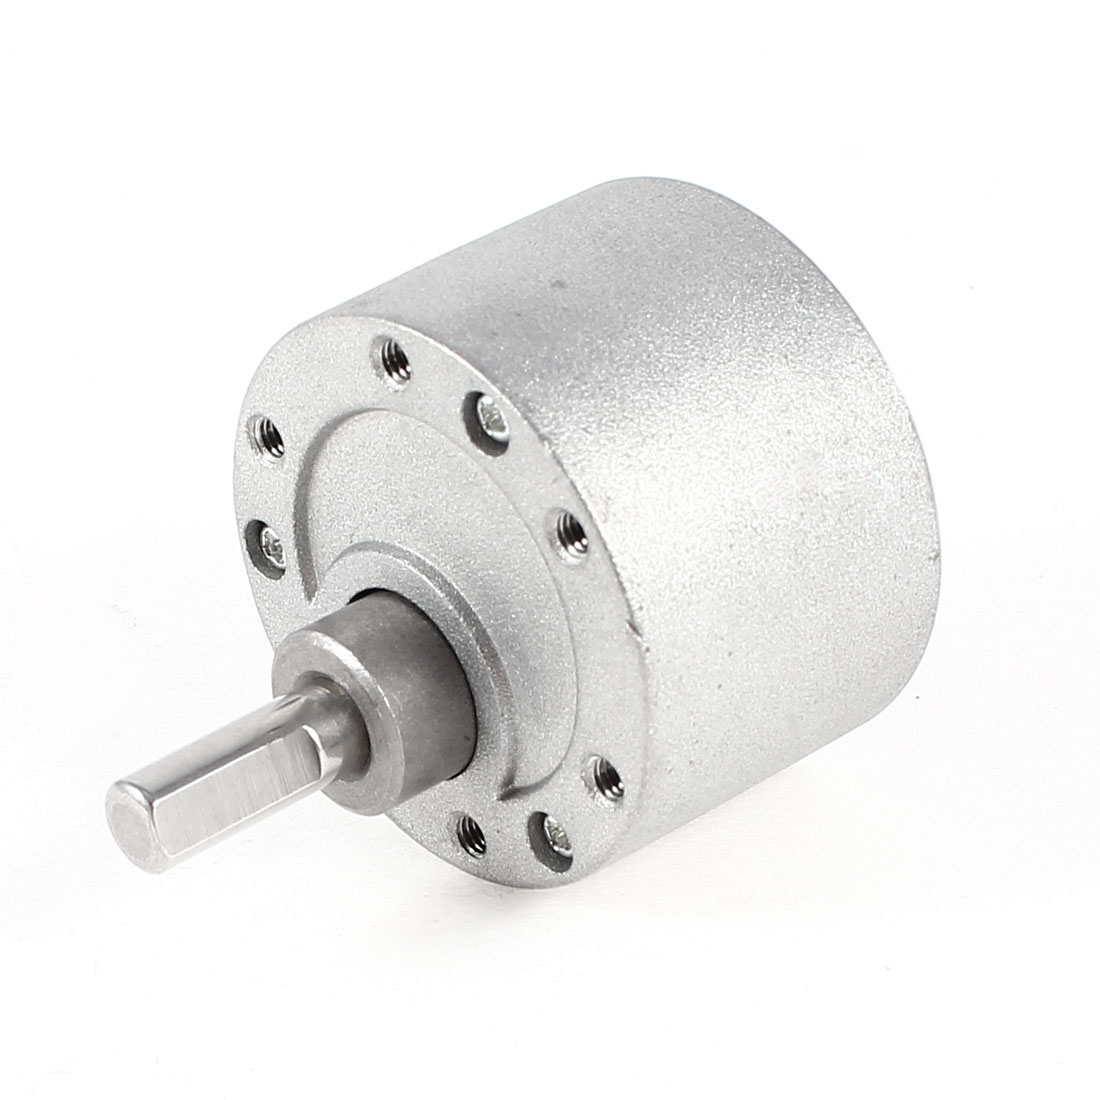 6mm Shaft Speed Reducer Reduction Gearbox Silver Tone for 500 520 555 3530 Motor